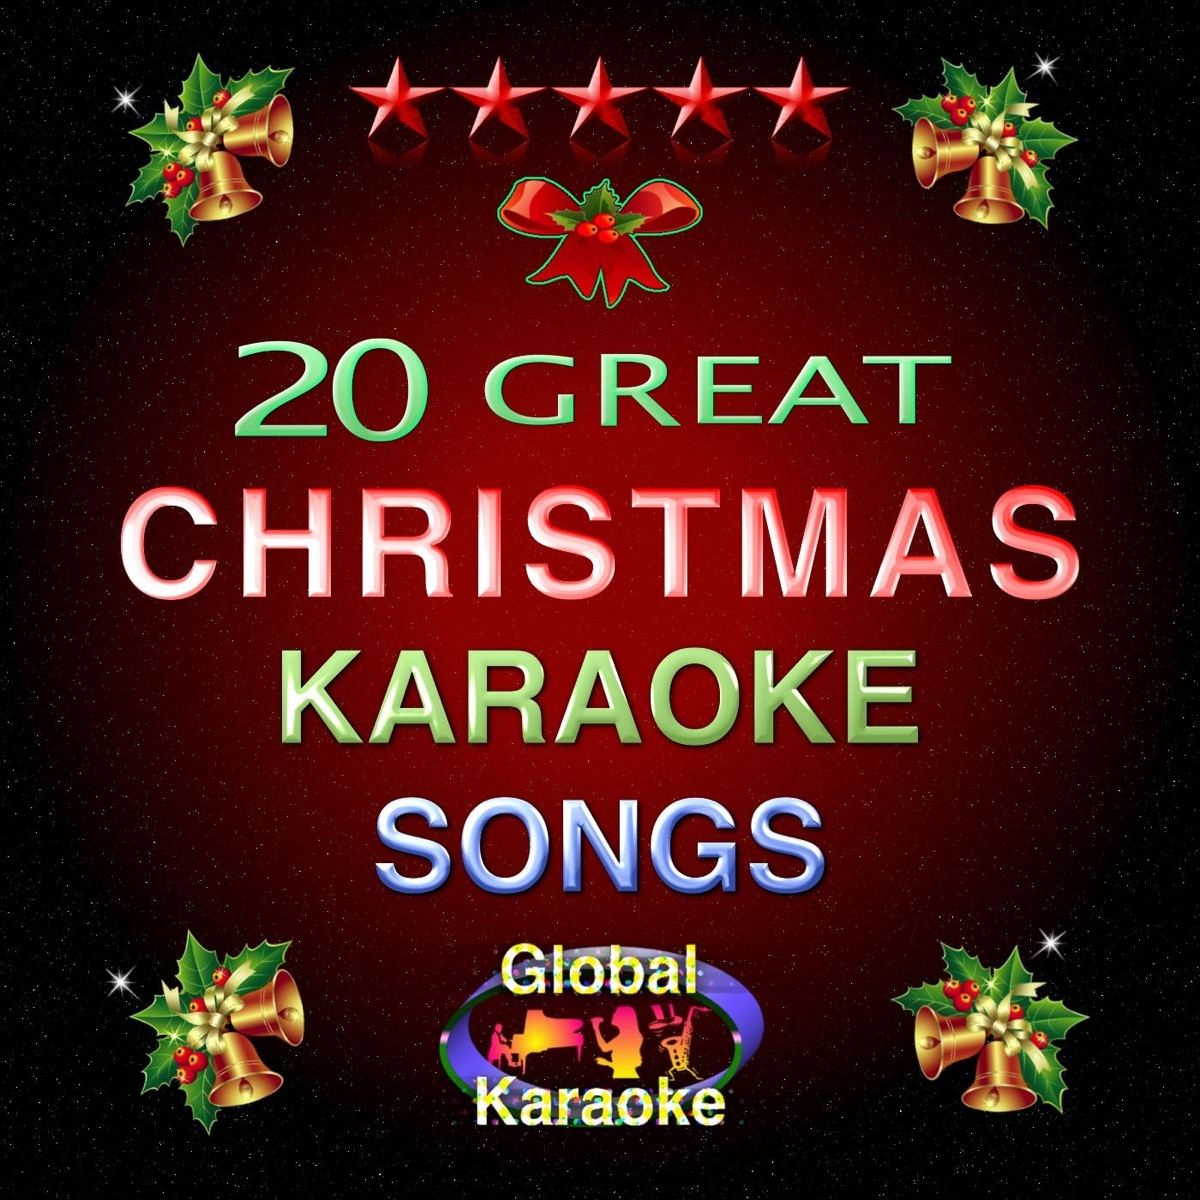 20 Great Christmas Karaoke Songs Album Cover by Global Karaoke